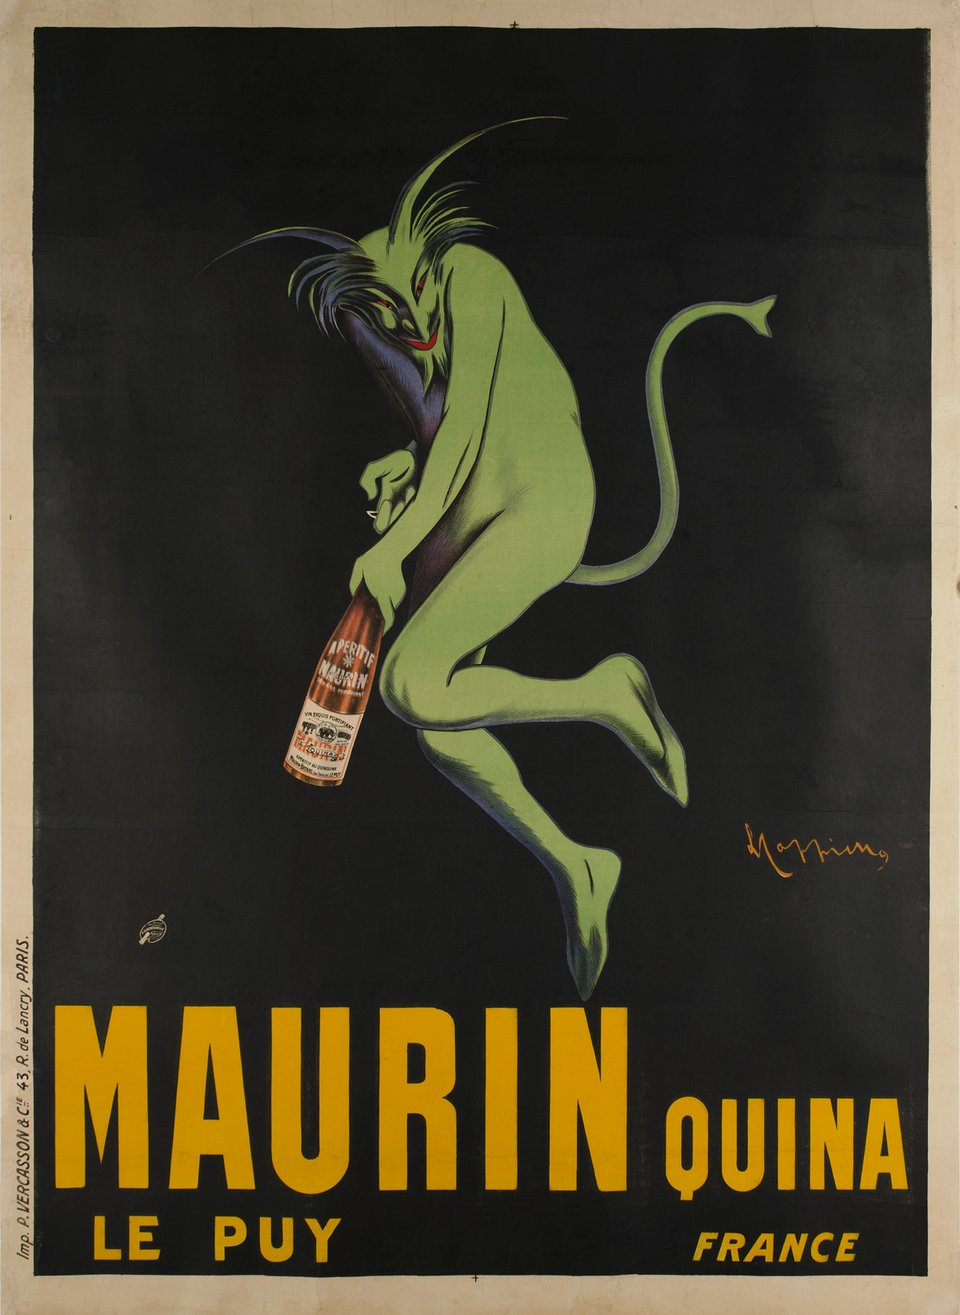 Vintage poster – Maurin Quina, Le Puy – Galerie 1 2 3